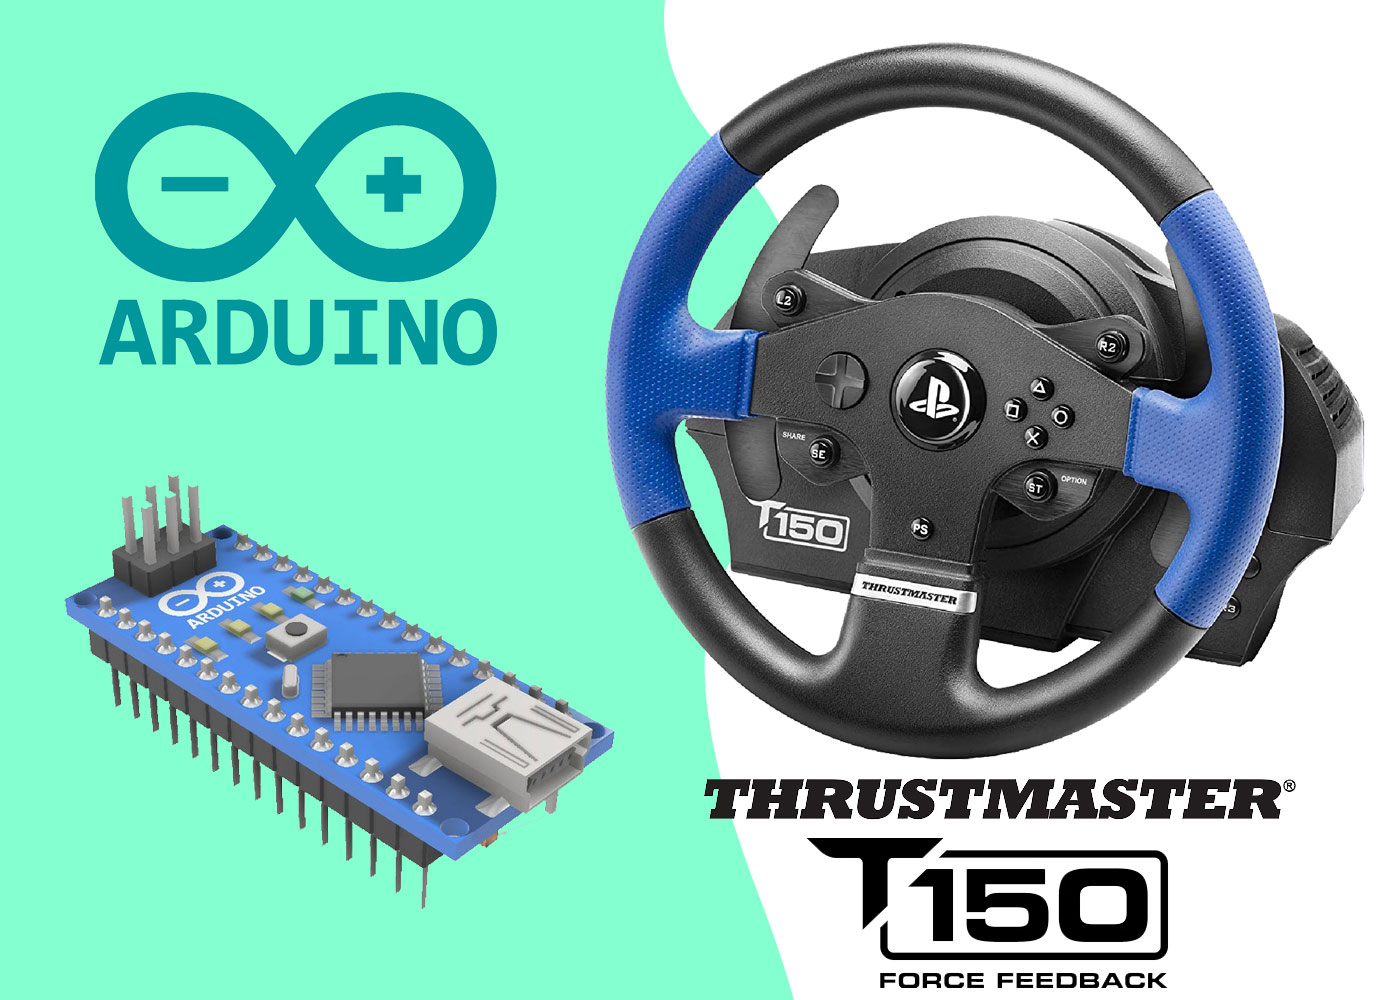 Thrustmaster T150 custom arduino wheel